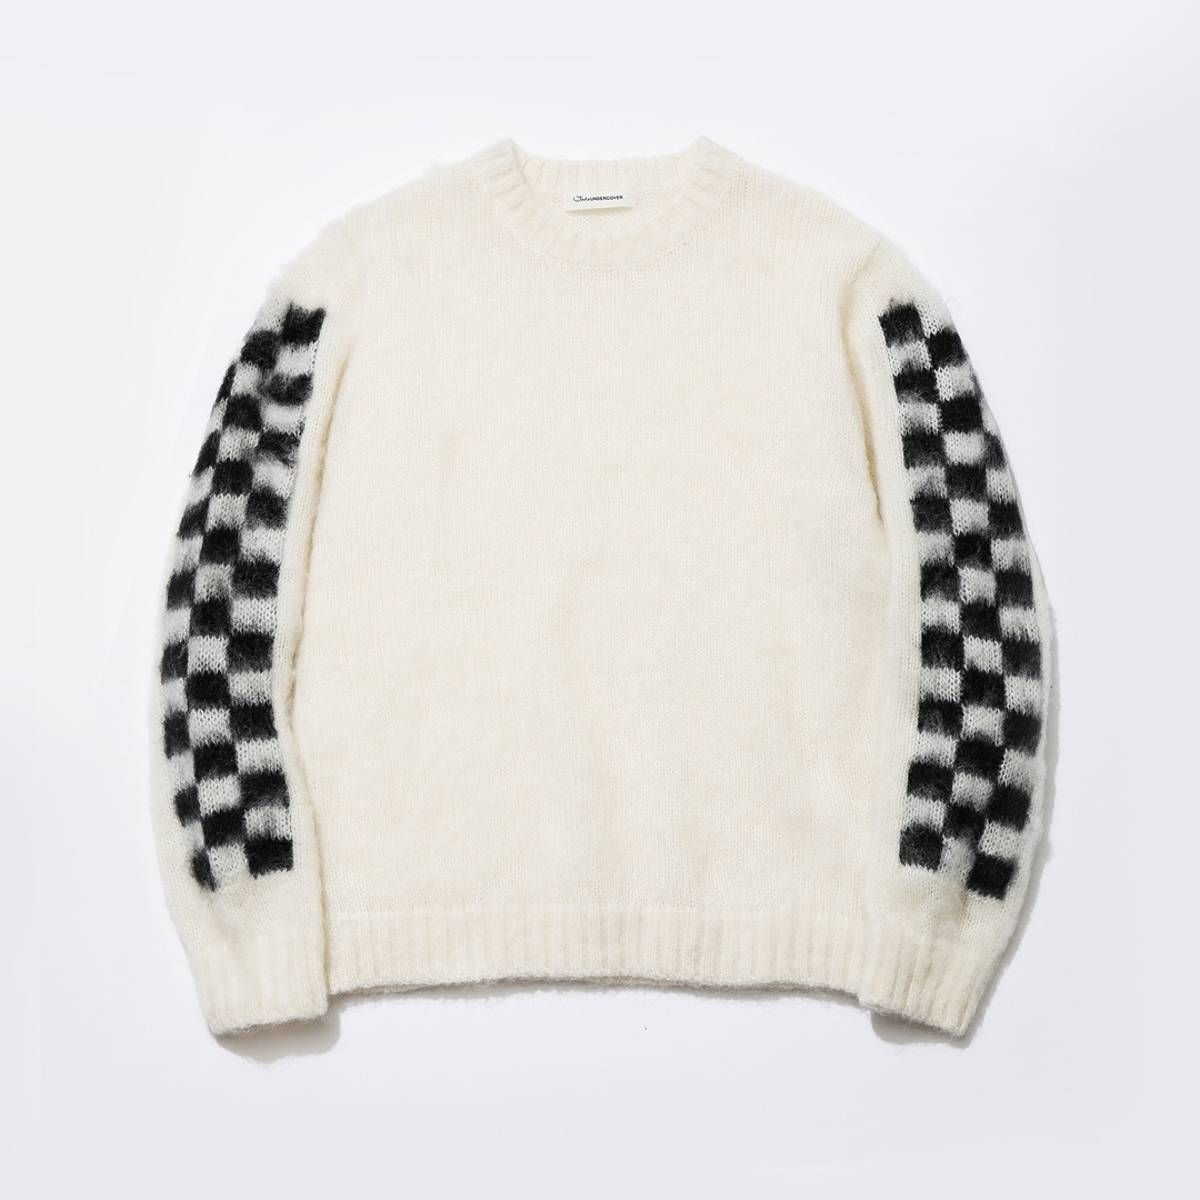 991e2ce6b3 Undercover JohnUndercover Checkered white mohair sweater Size l - Sweaters    Knitwear for Sale - Grailed